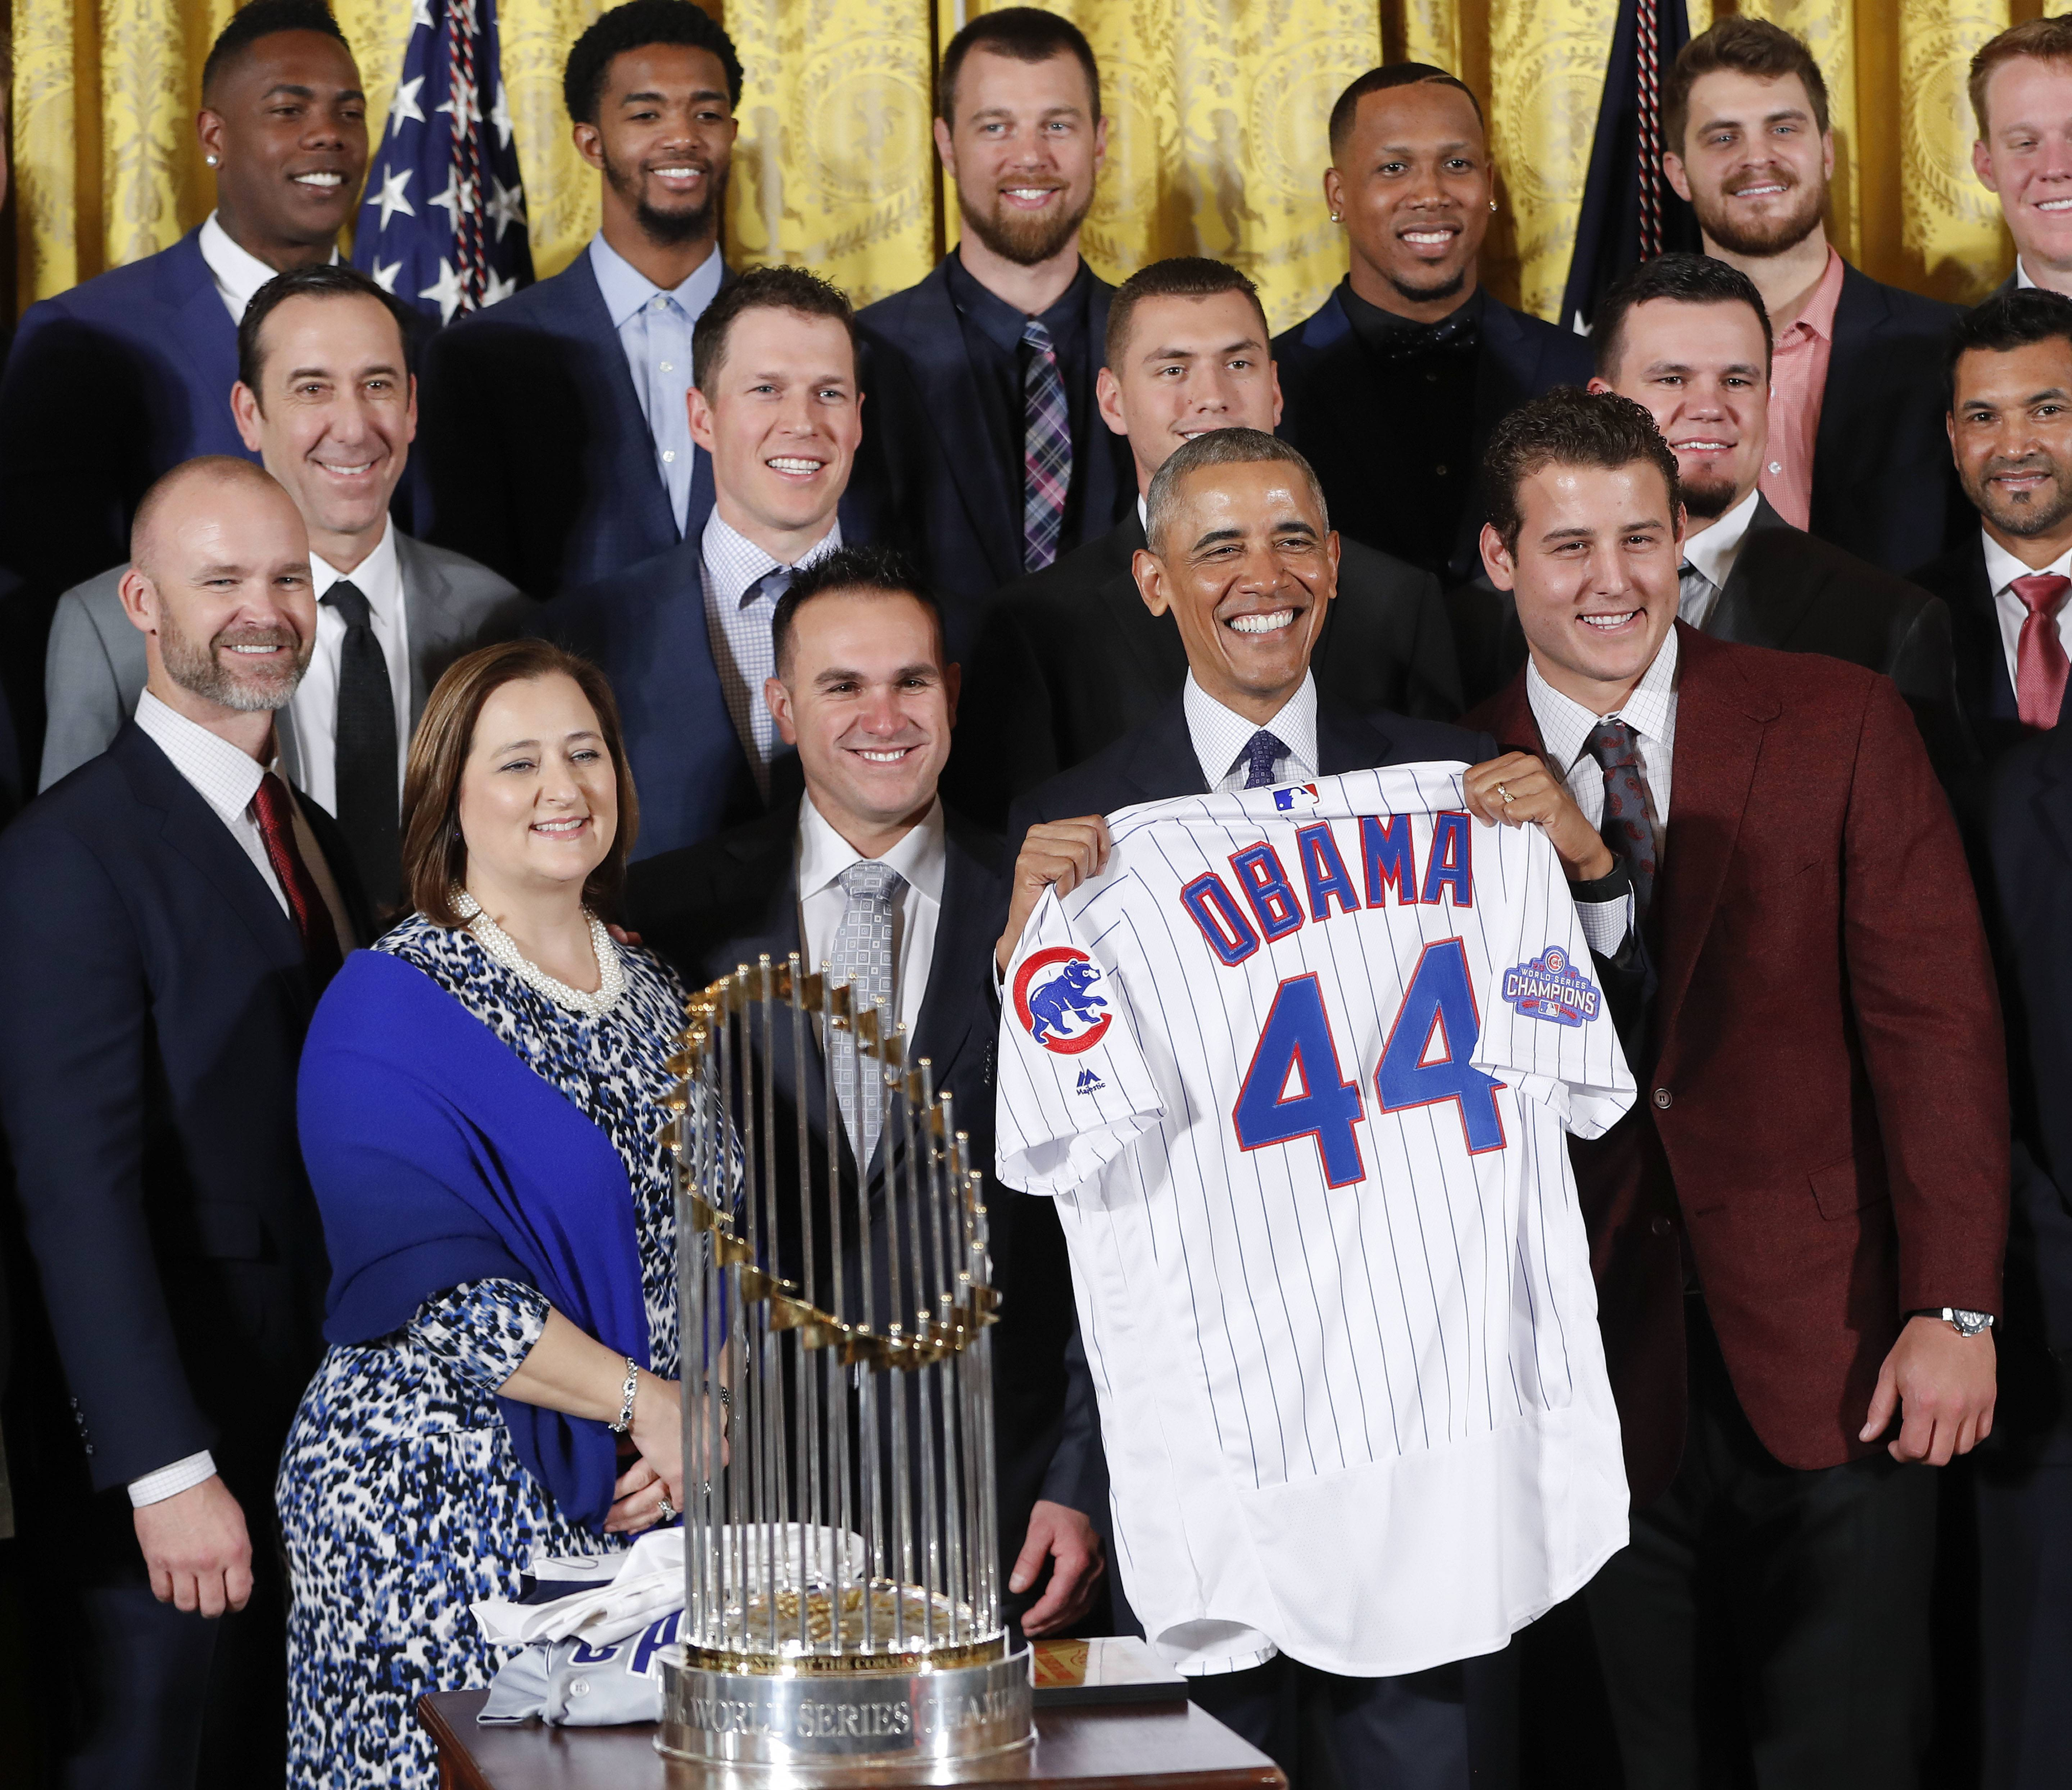 There was a time when the concept of a black president was even more unbelievable than the idea of the Cubs winning the World Series. On Monday's Martin Luther King Jr. Day, President Barack Obama holds up a personalized Chicago Cubs baseball jersey during a ceremony in the East Room of the White House to honor the 2016 World Series Champion baseball team.